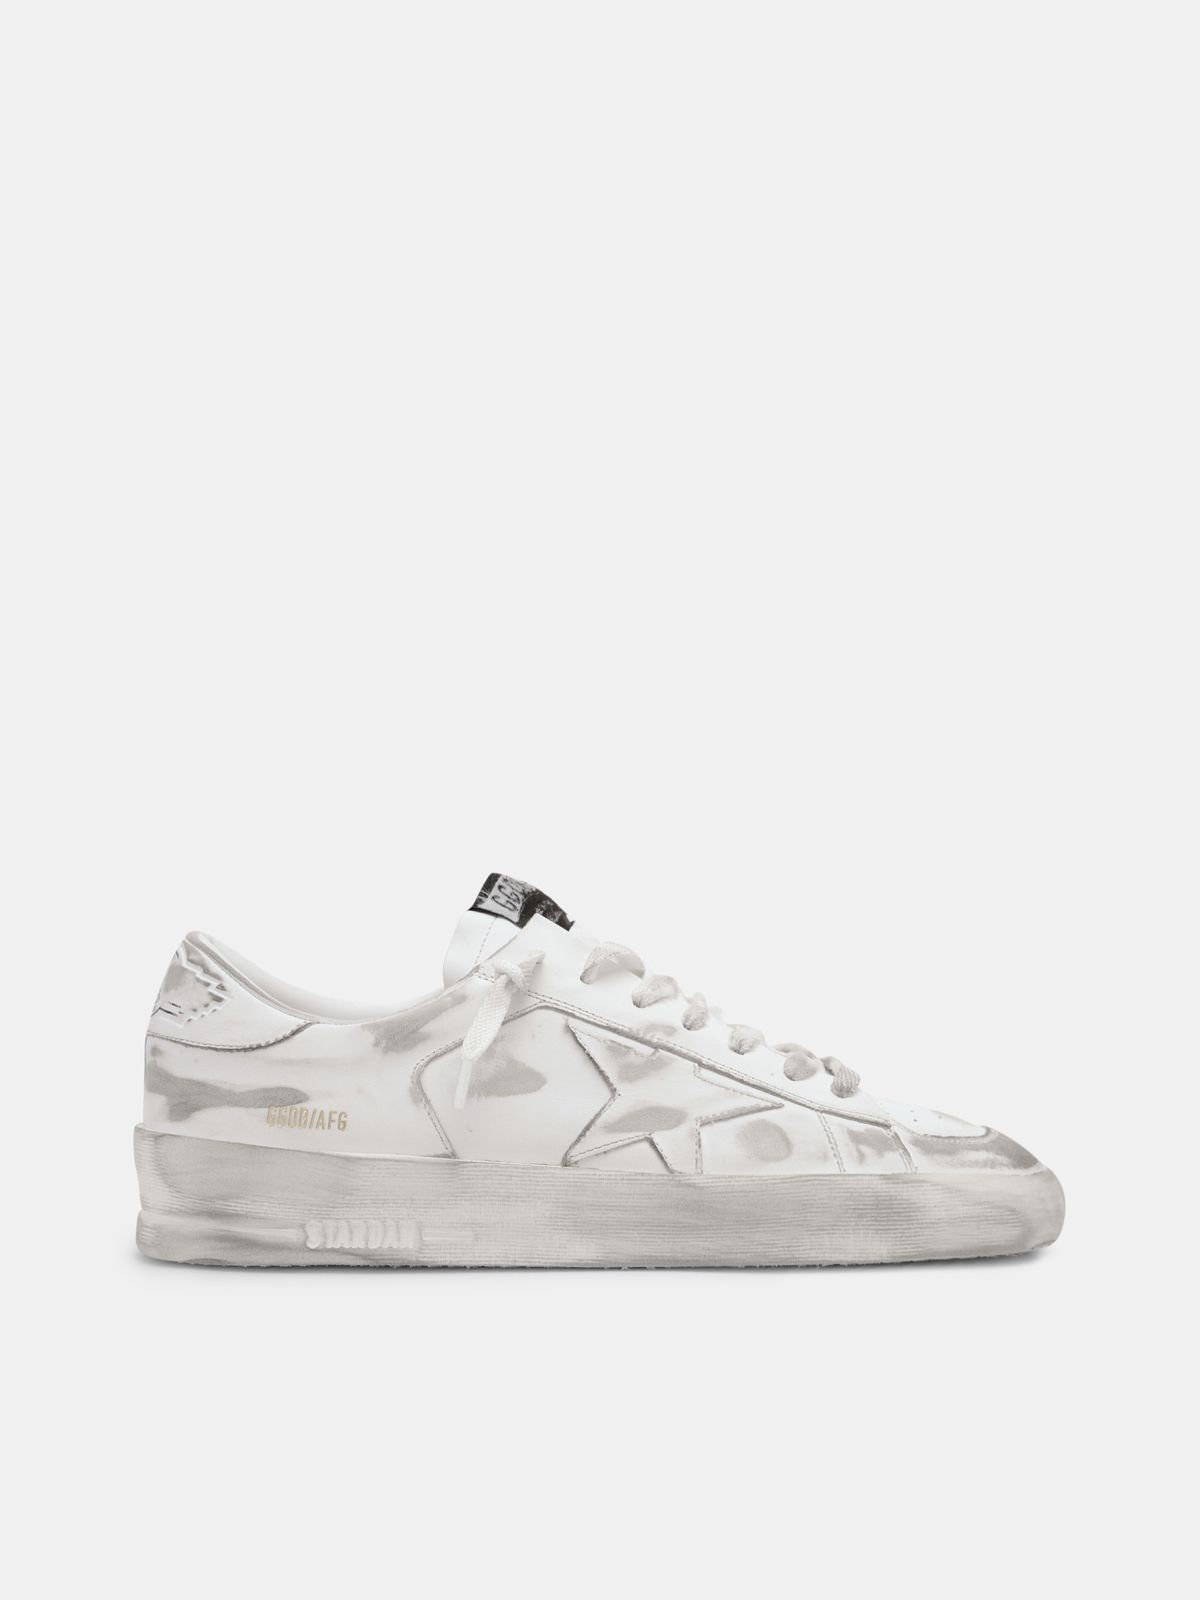 Stardan sneakers in white leather with lived-in treatment